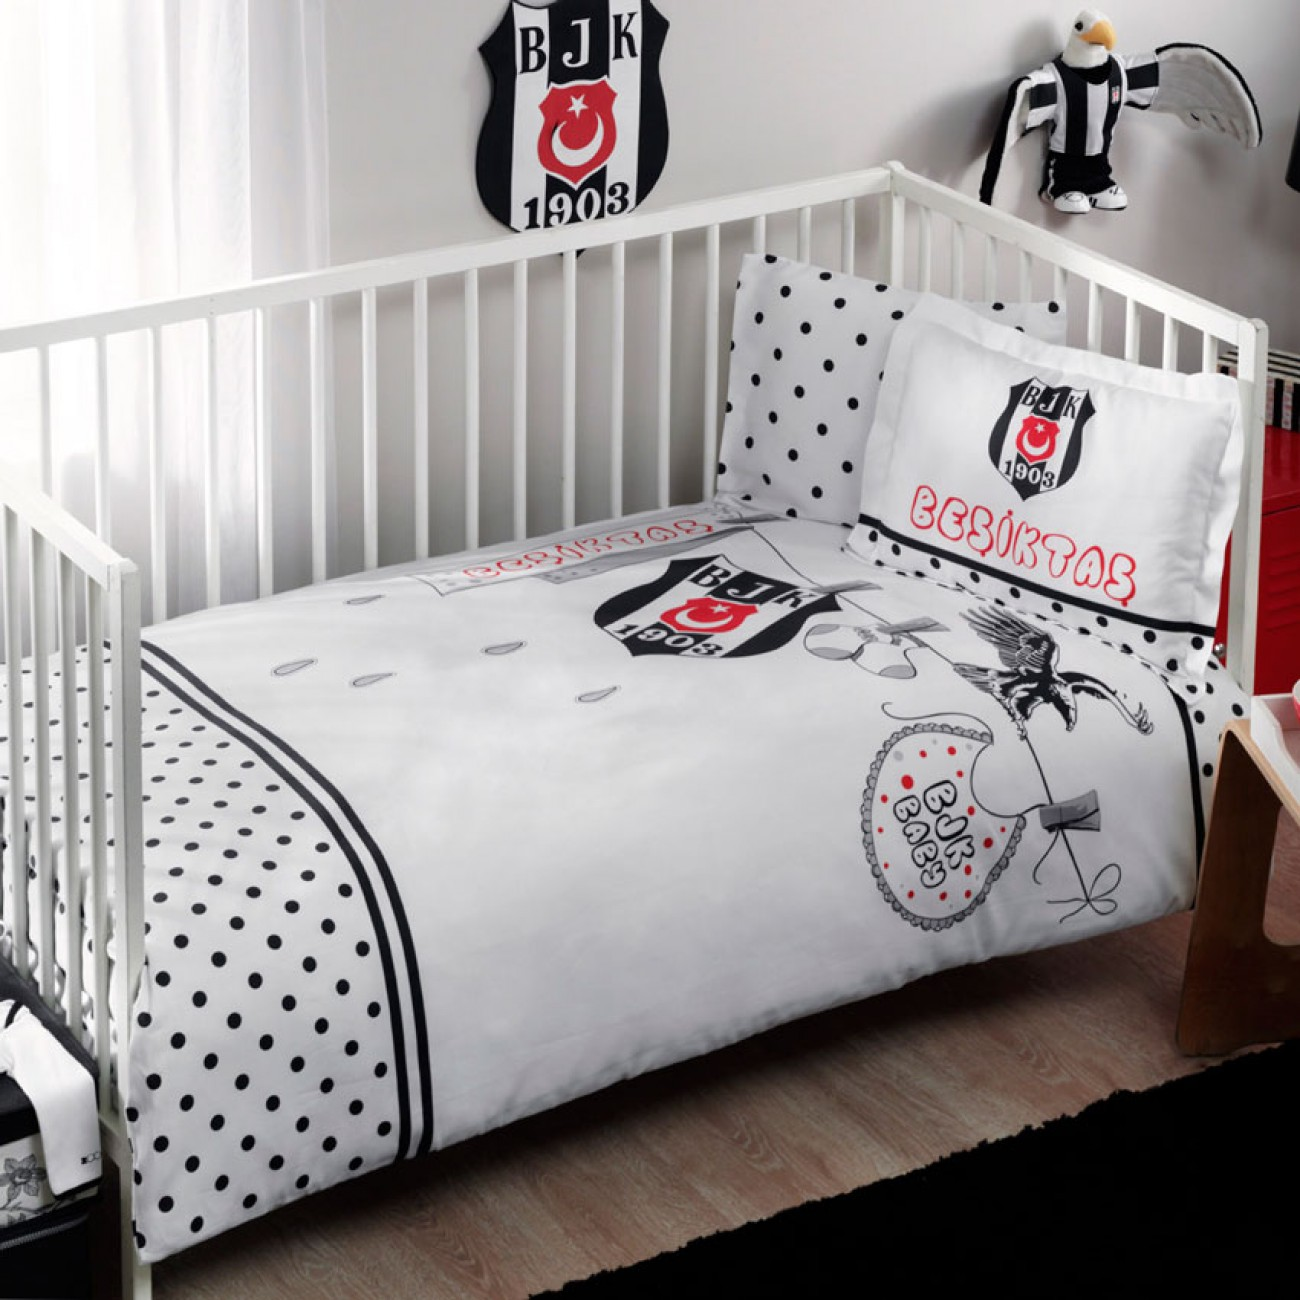 tac baby bettw sche set besiktas fanatik baby. Black Bedroom Furniture Sets. Home Design Ideas